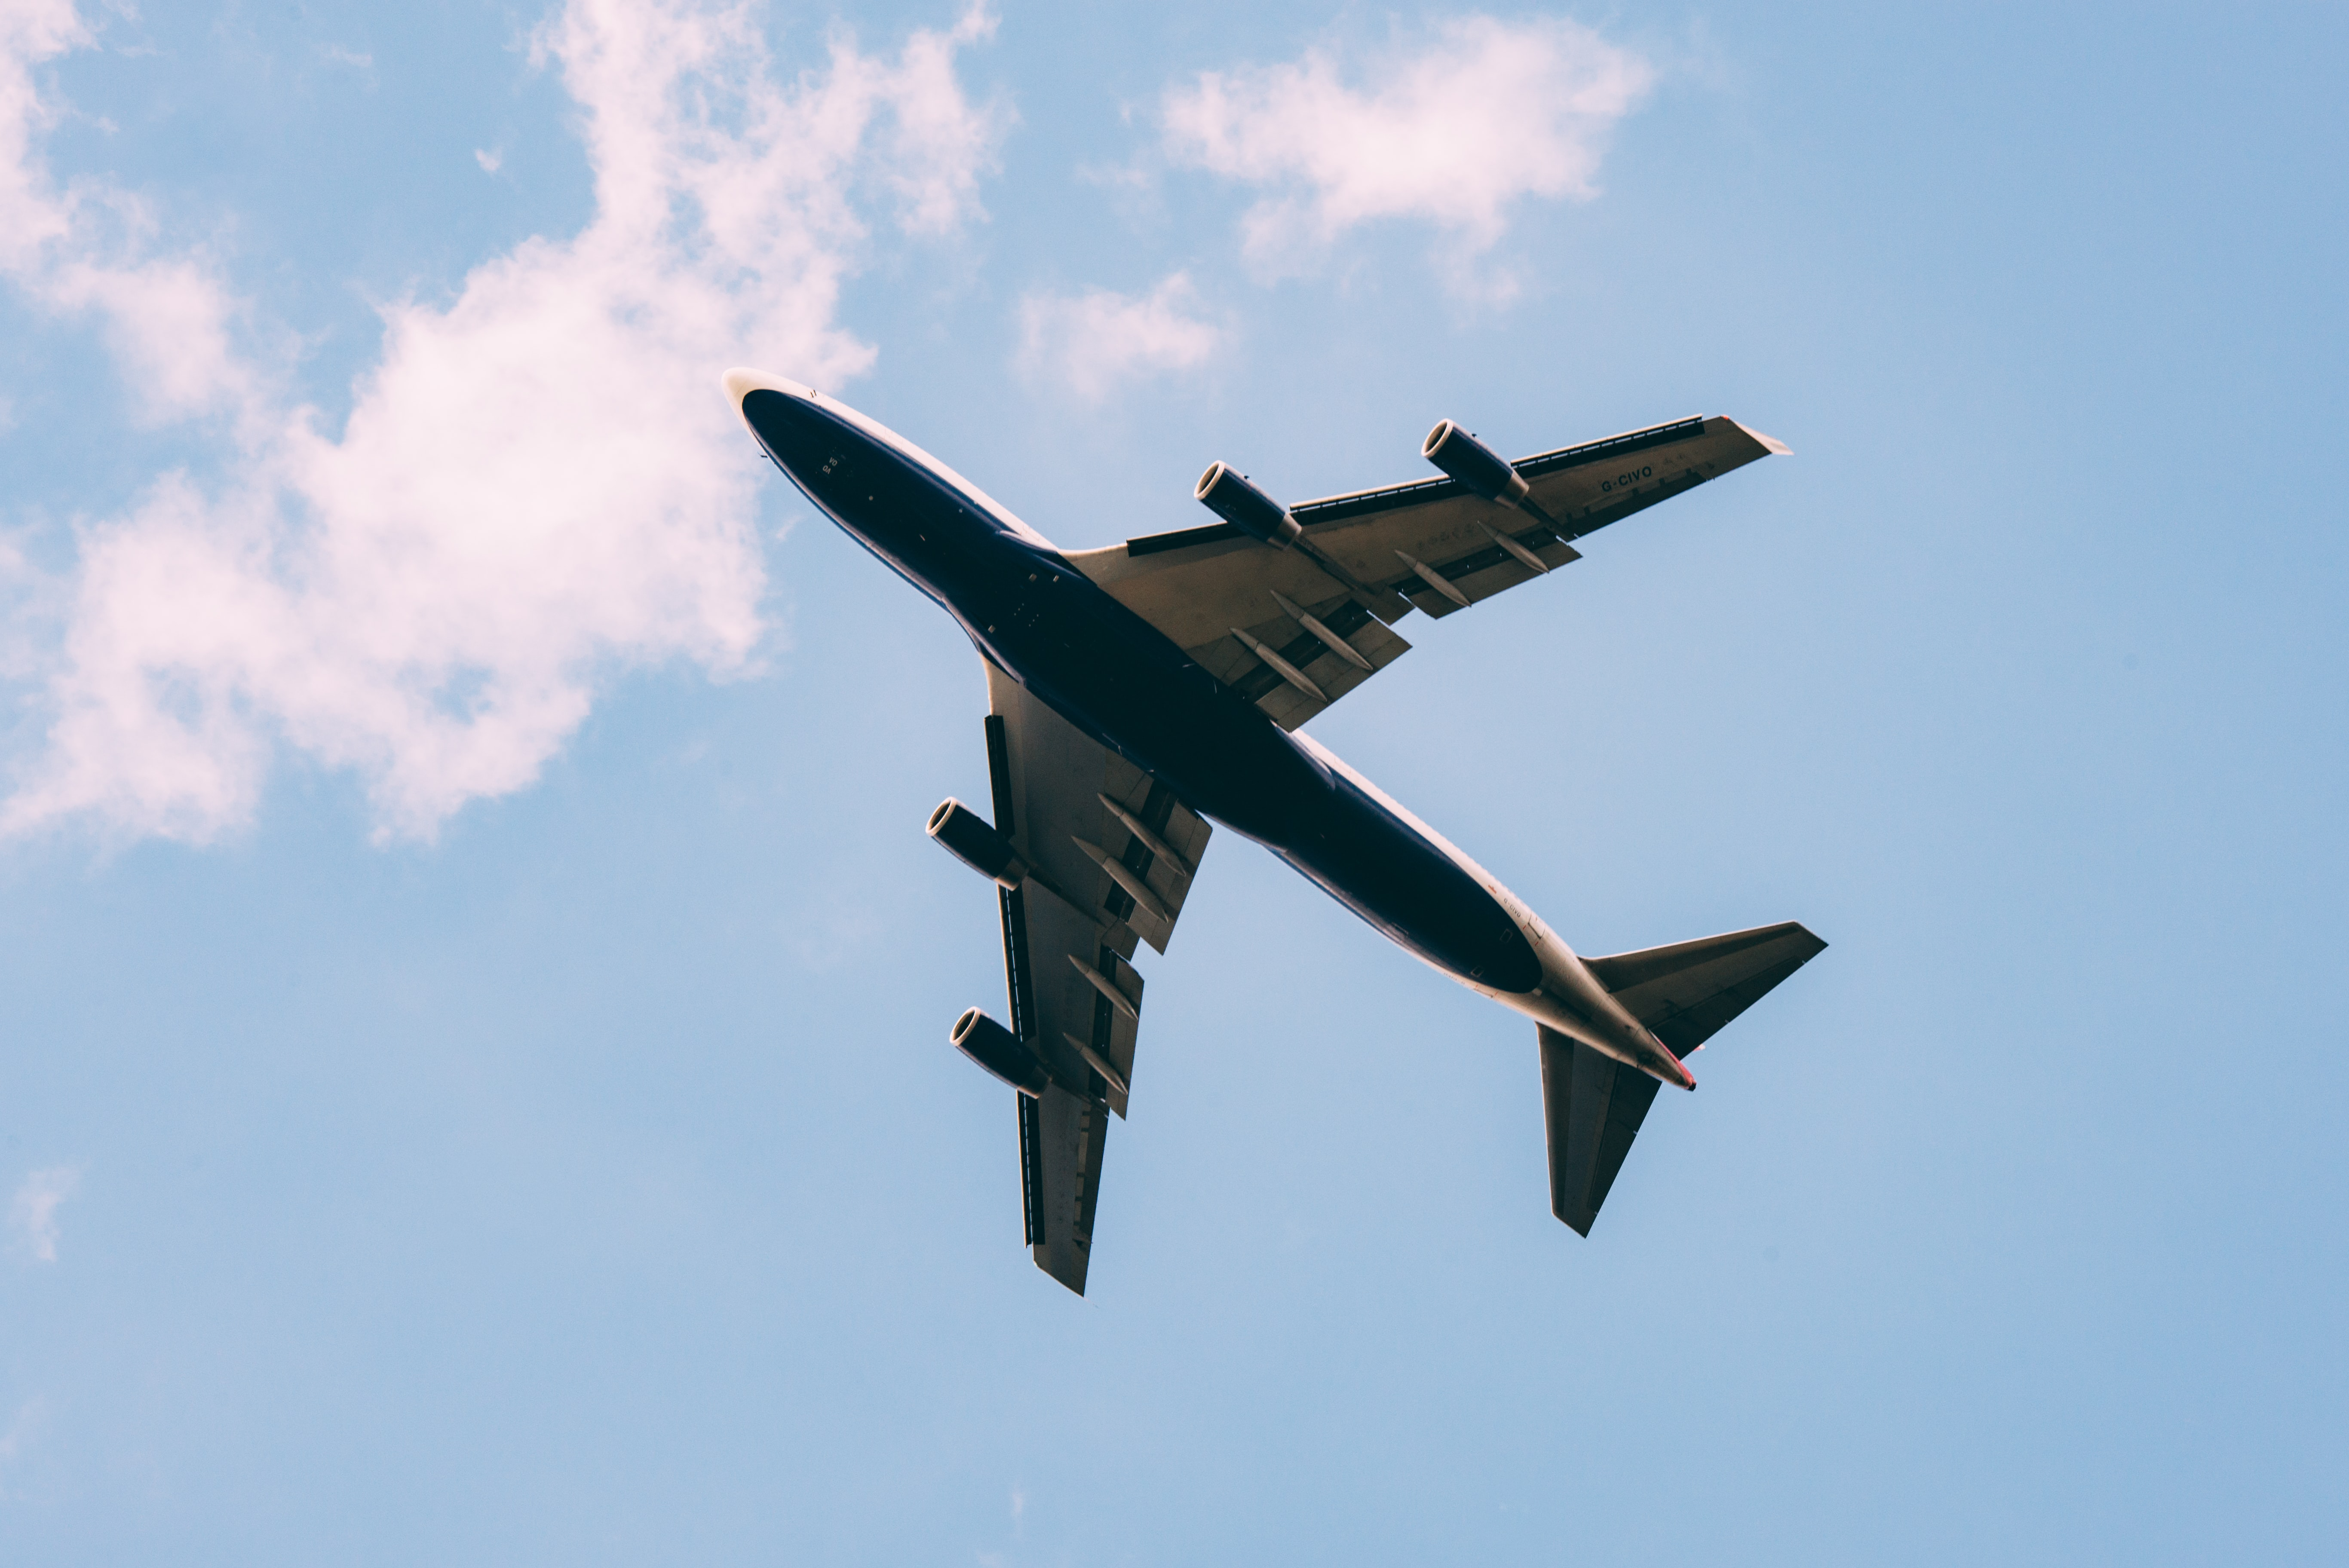 low angle photography of airplane on the sky